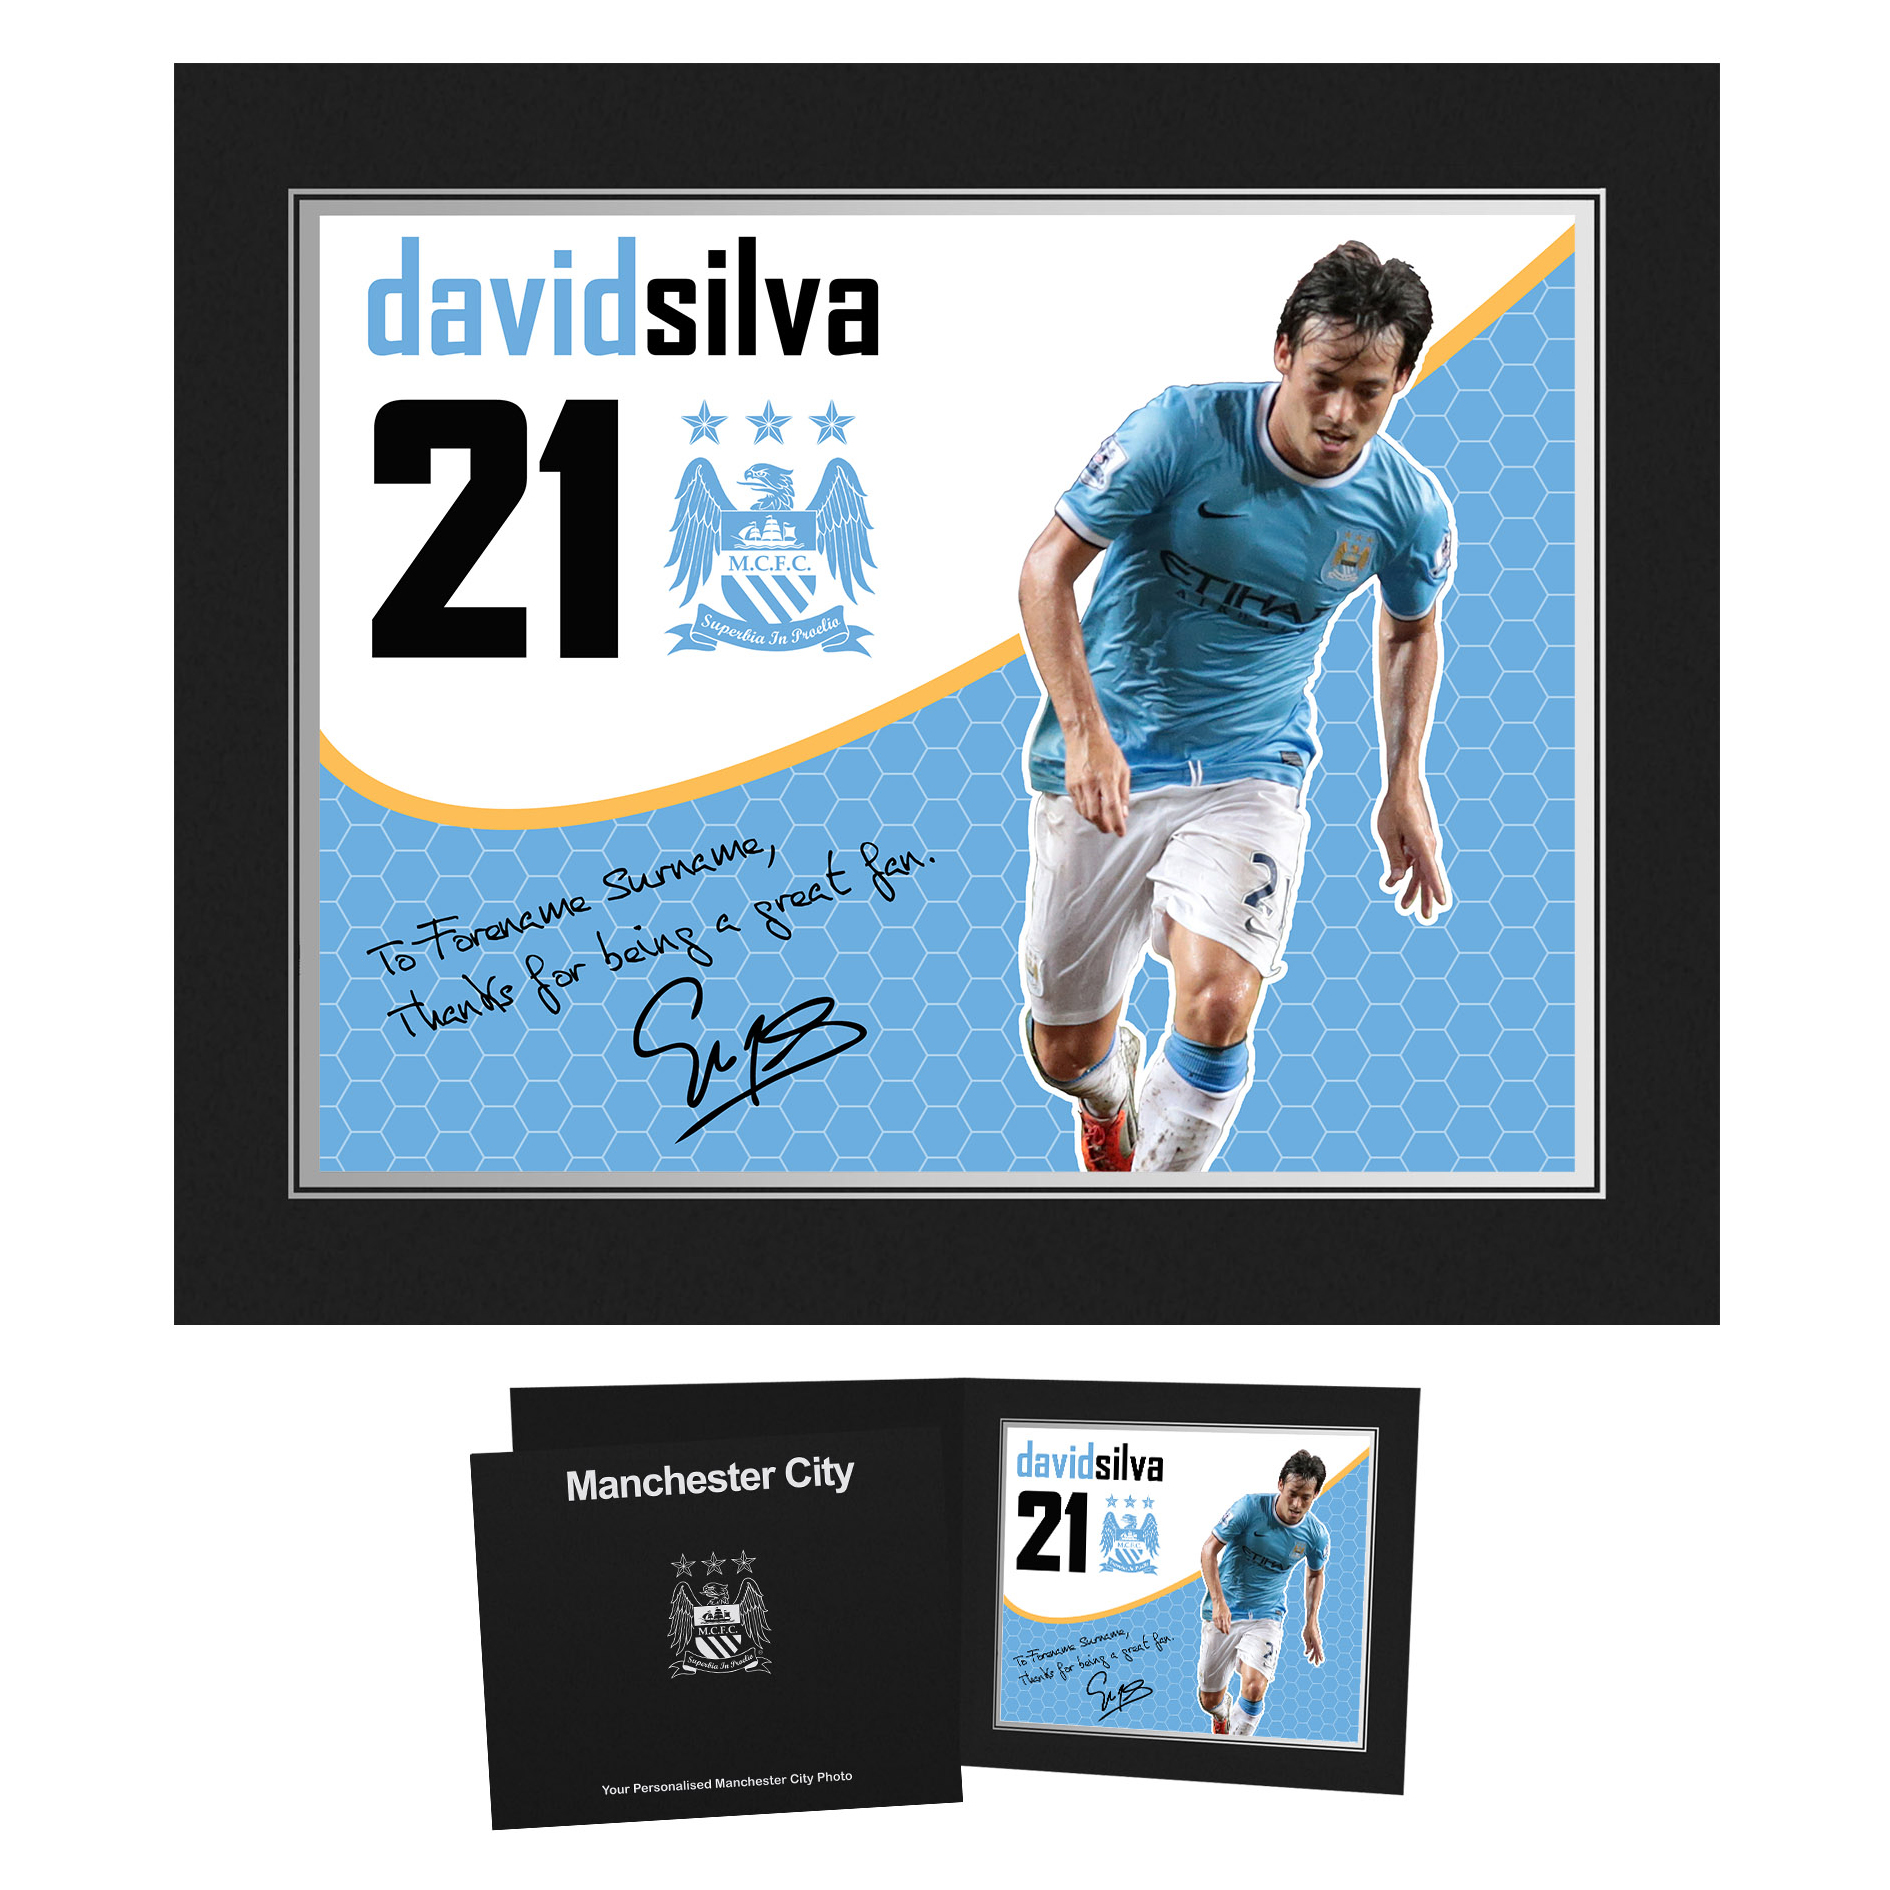 Manchester City Personalised Swirl Signature Photo in Presentation Folder - Silva